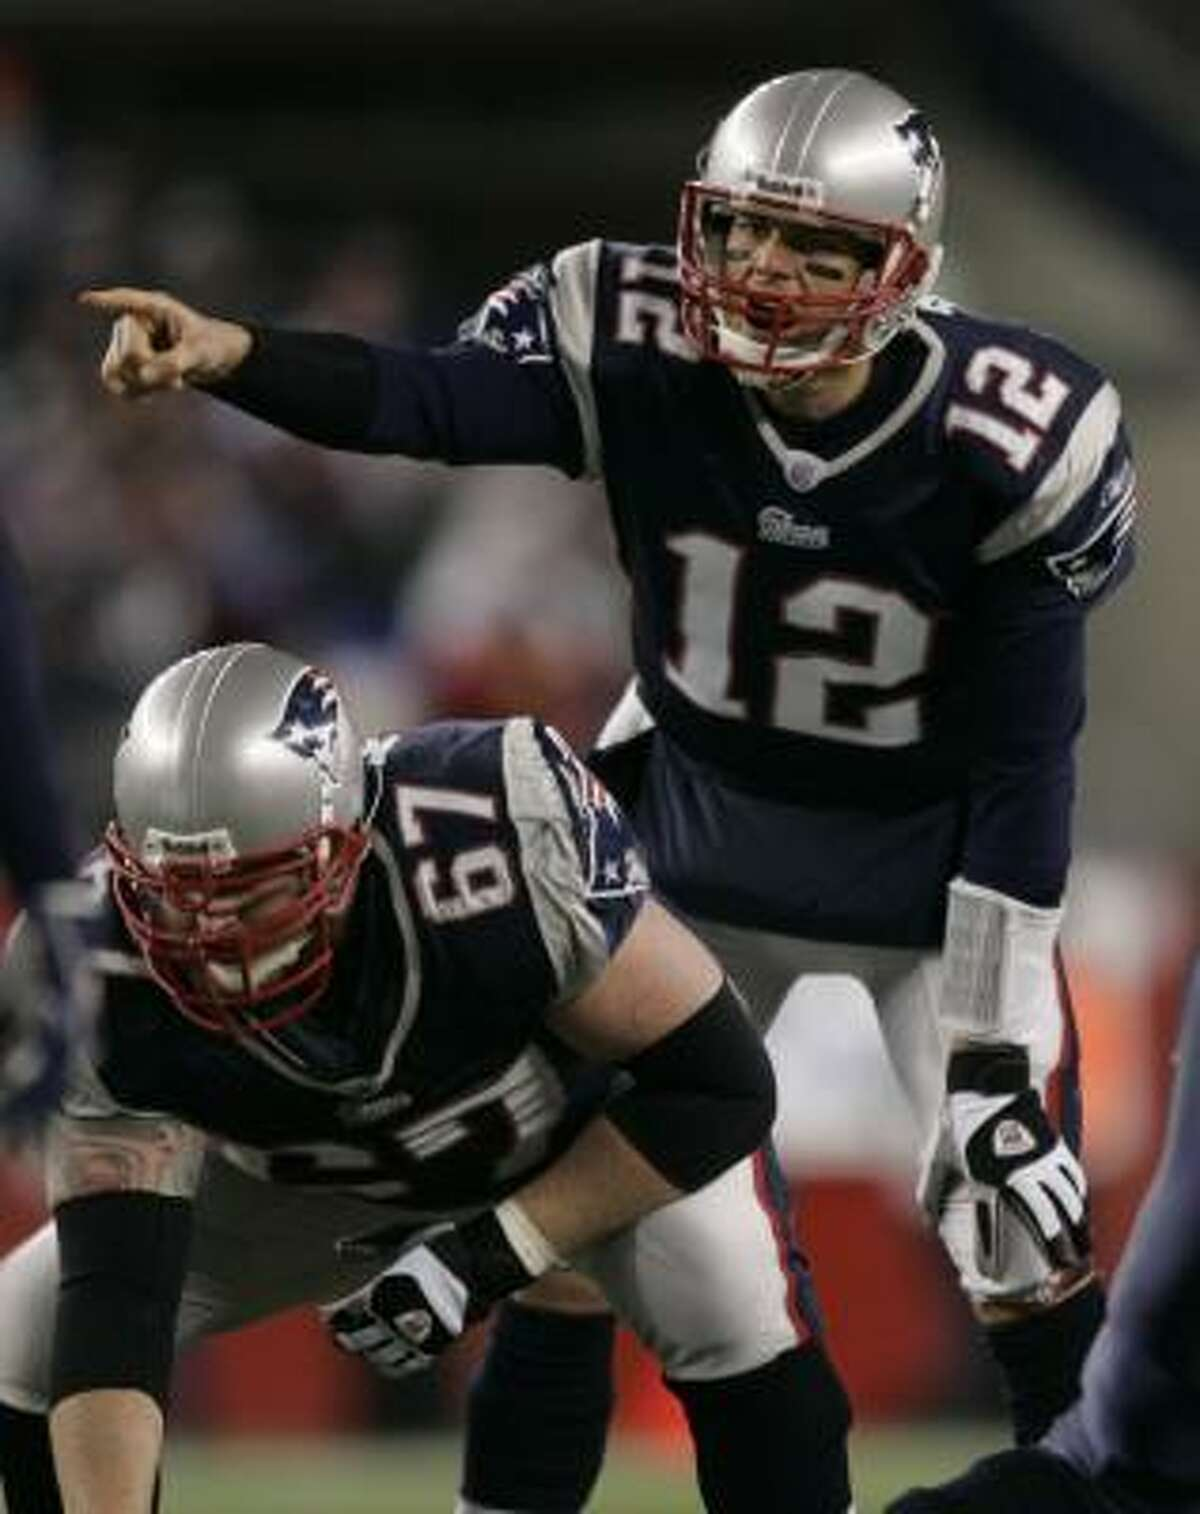 The Top 10 as voted on by readers: 1. TOM BRADY, Patriots First-place votes: 261